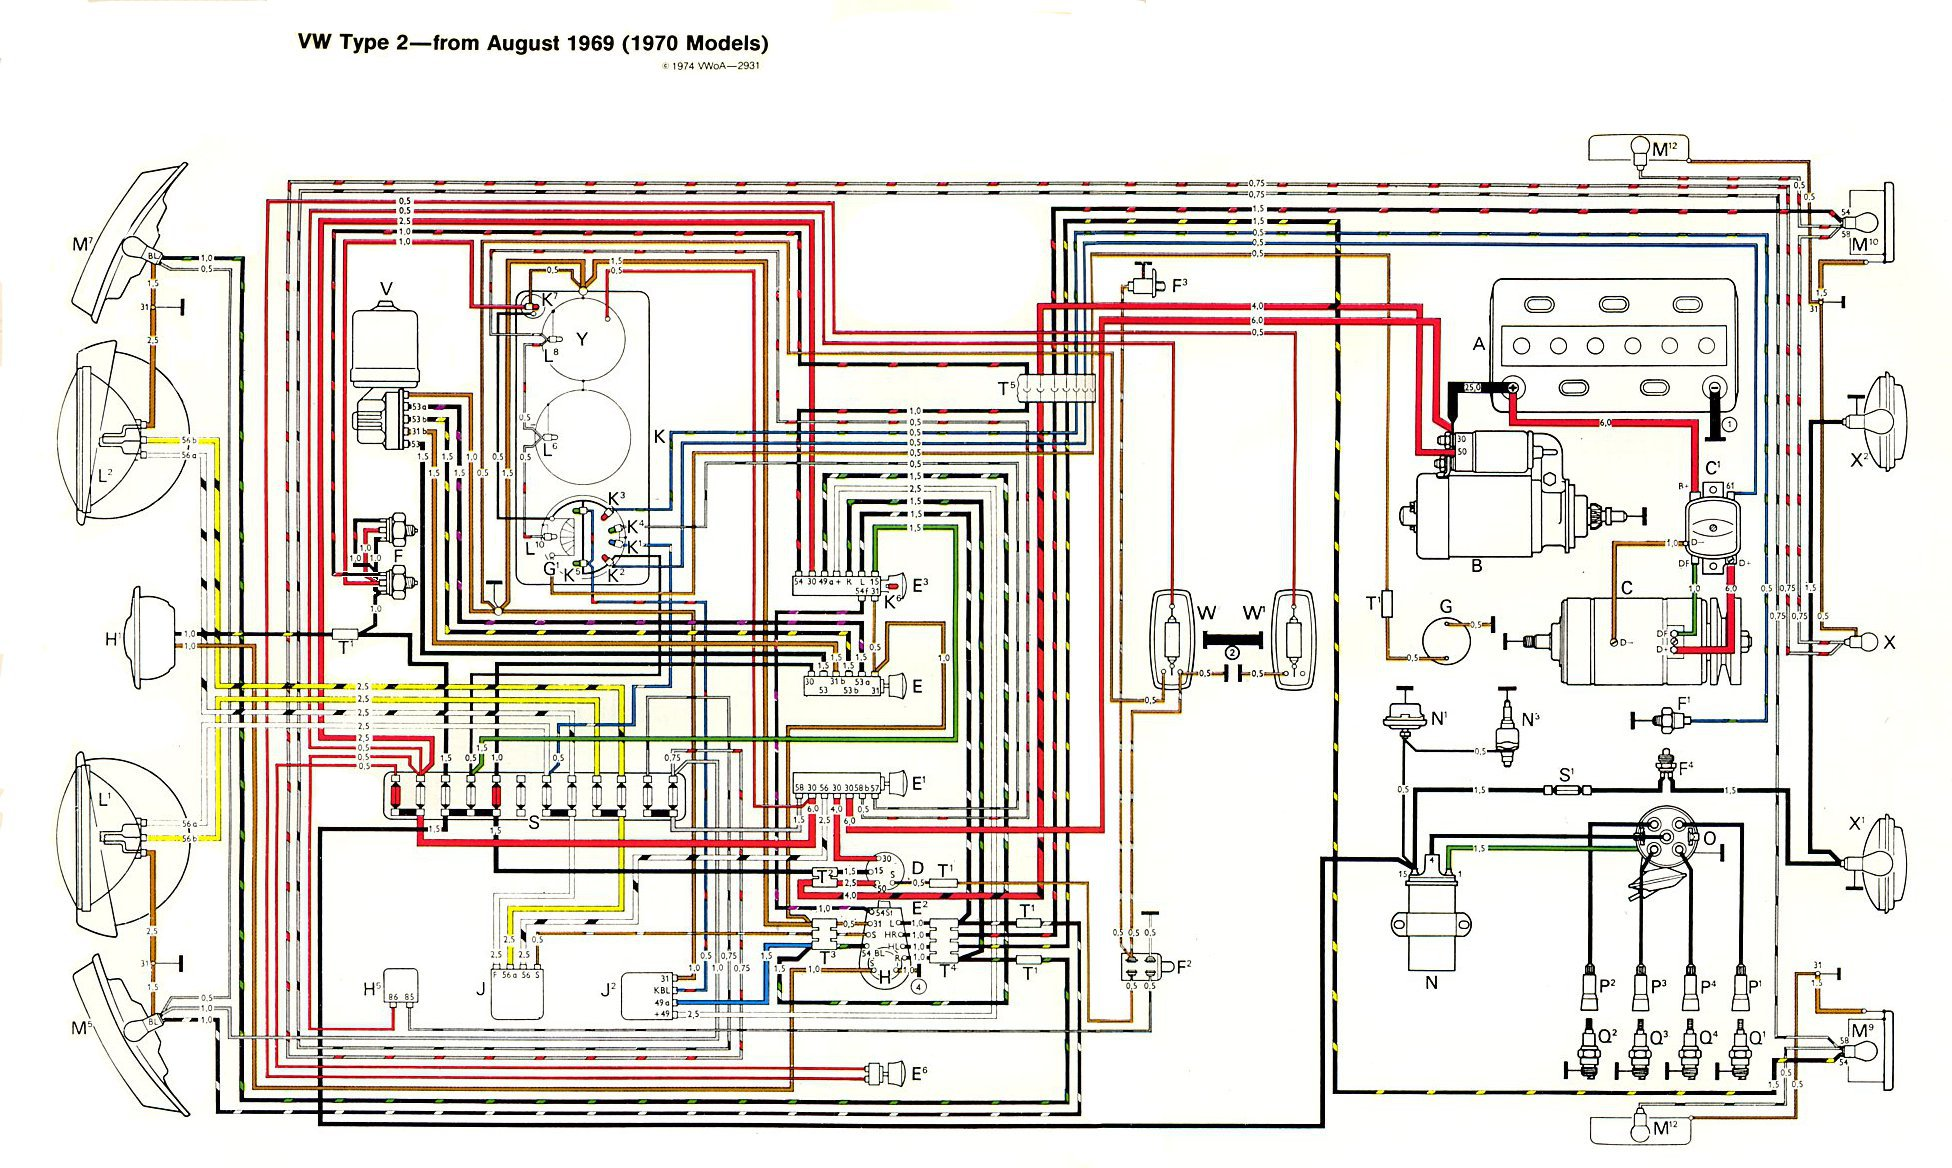 baybus_70 thesamba com type 2 wiring diagrams vw mk1 wiring diagram at creativeand.co